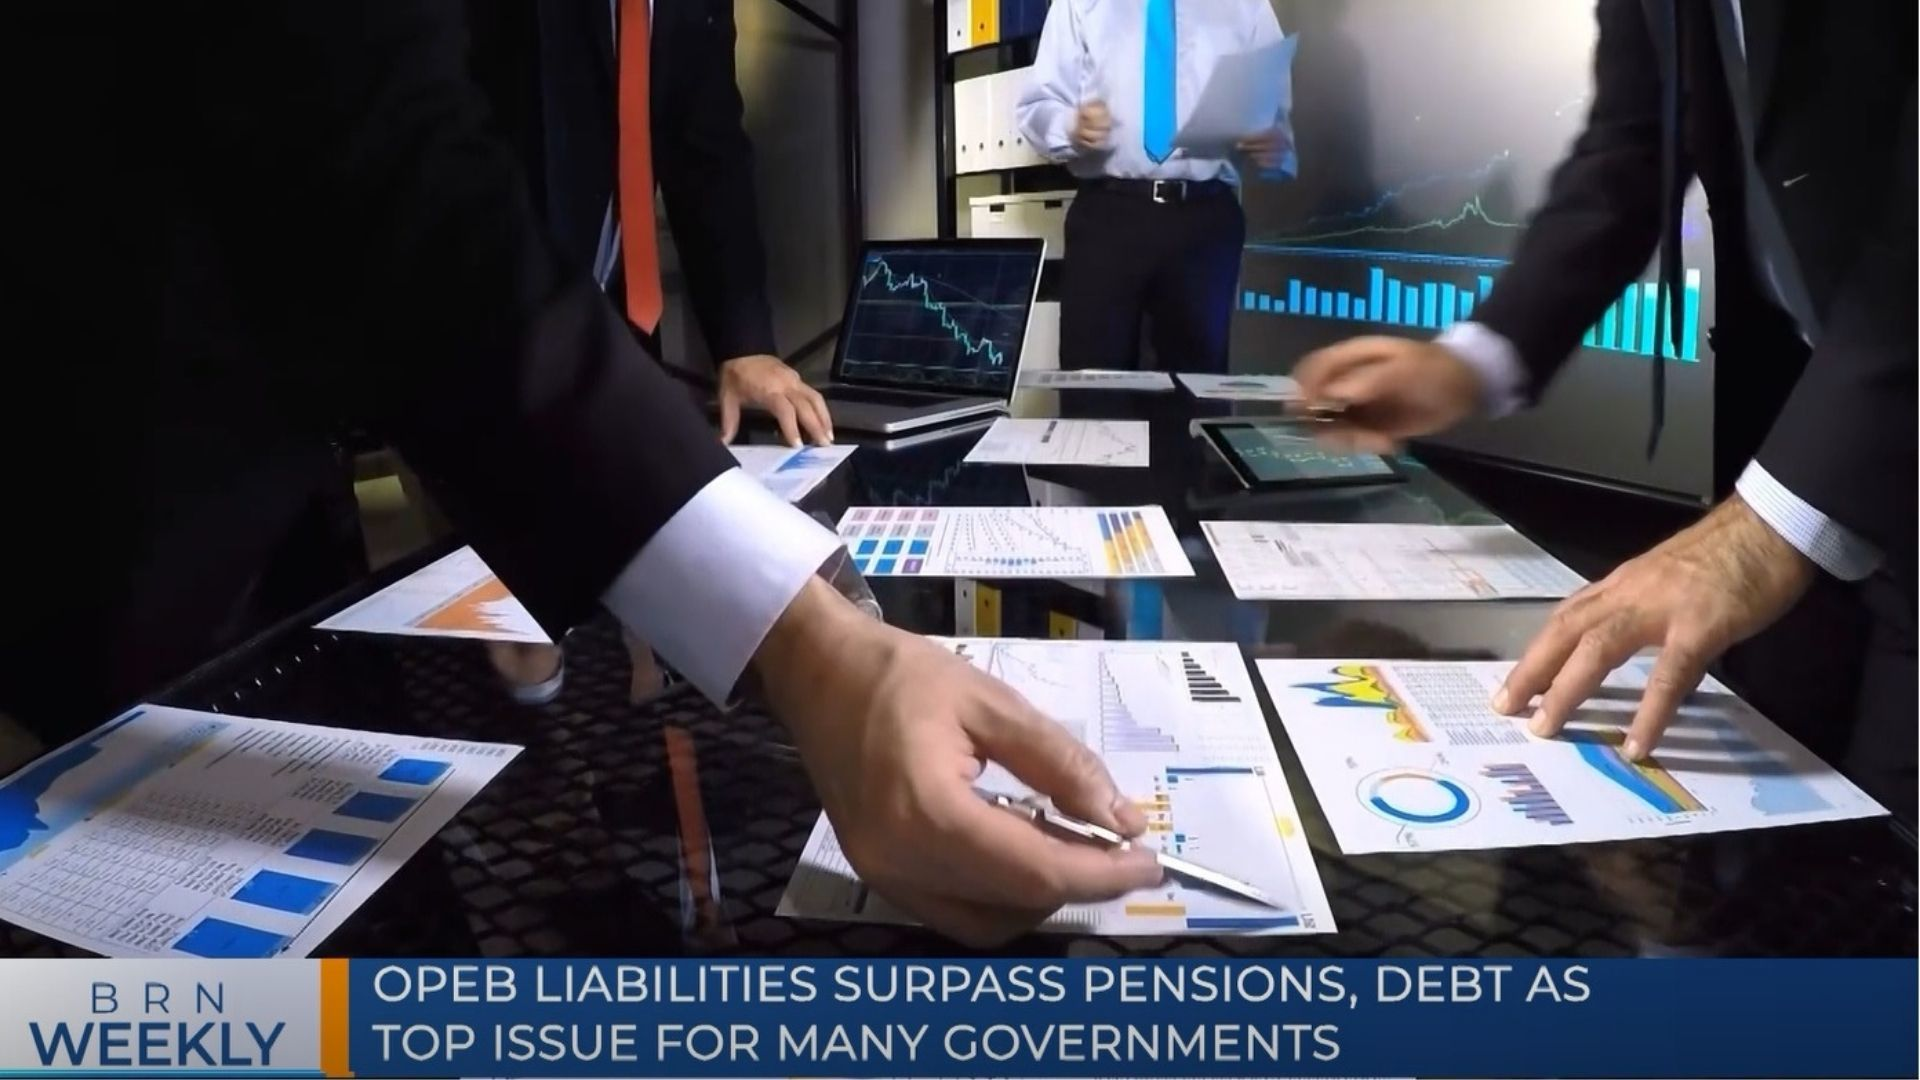 BRN Weekly | OPEB liabilities surpass pensions, debt as top issue for many governments